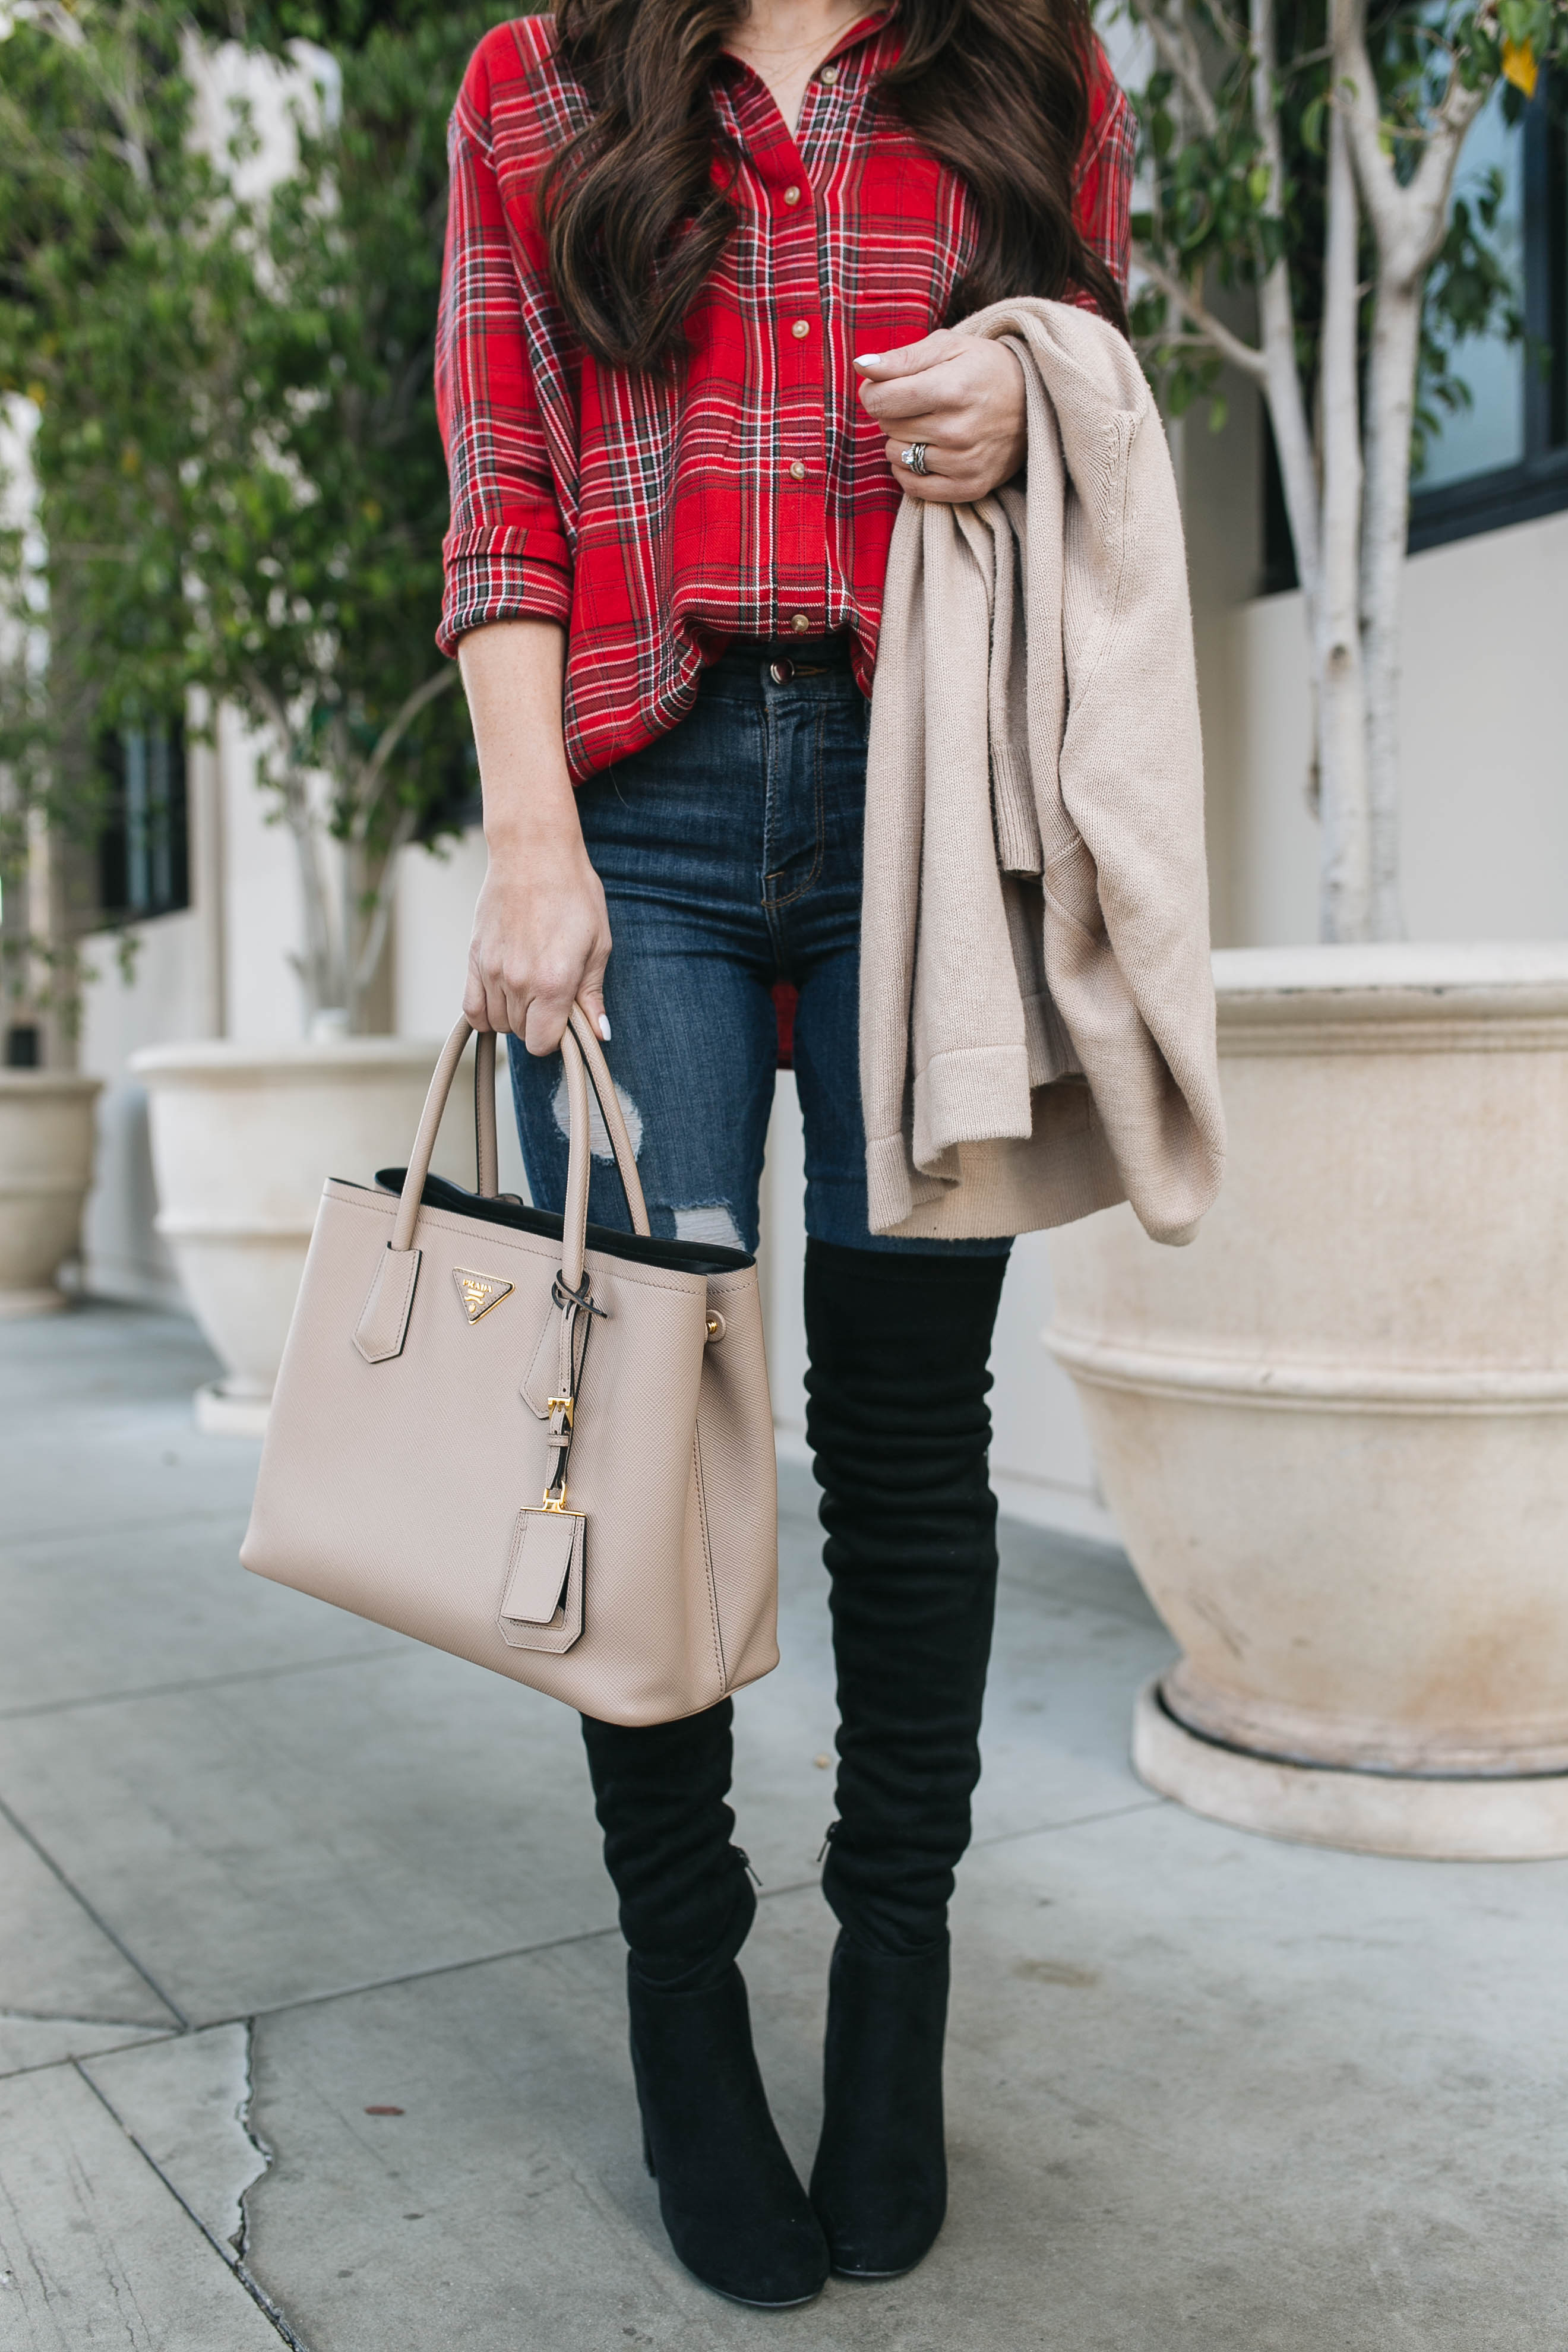 Style blogger Daryl-Ann Denner shares christmas day outfit ideas including red tartan plaid shirt and over the knee boots with good american jeans